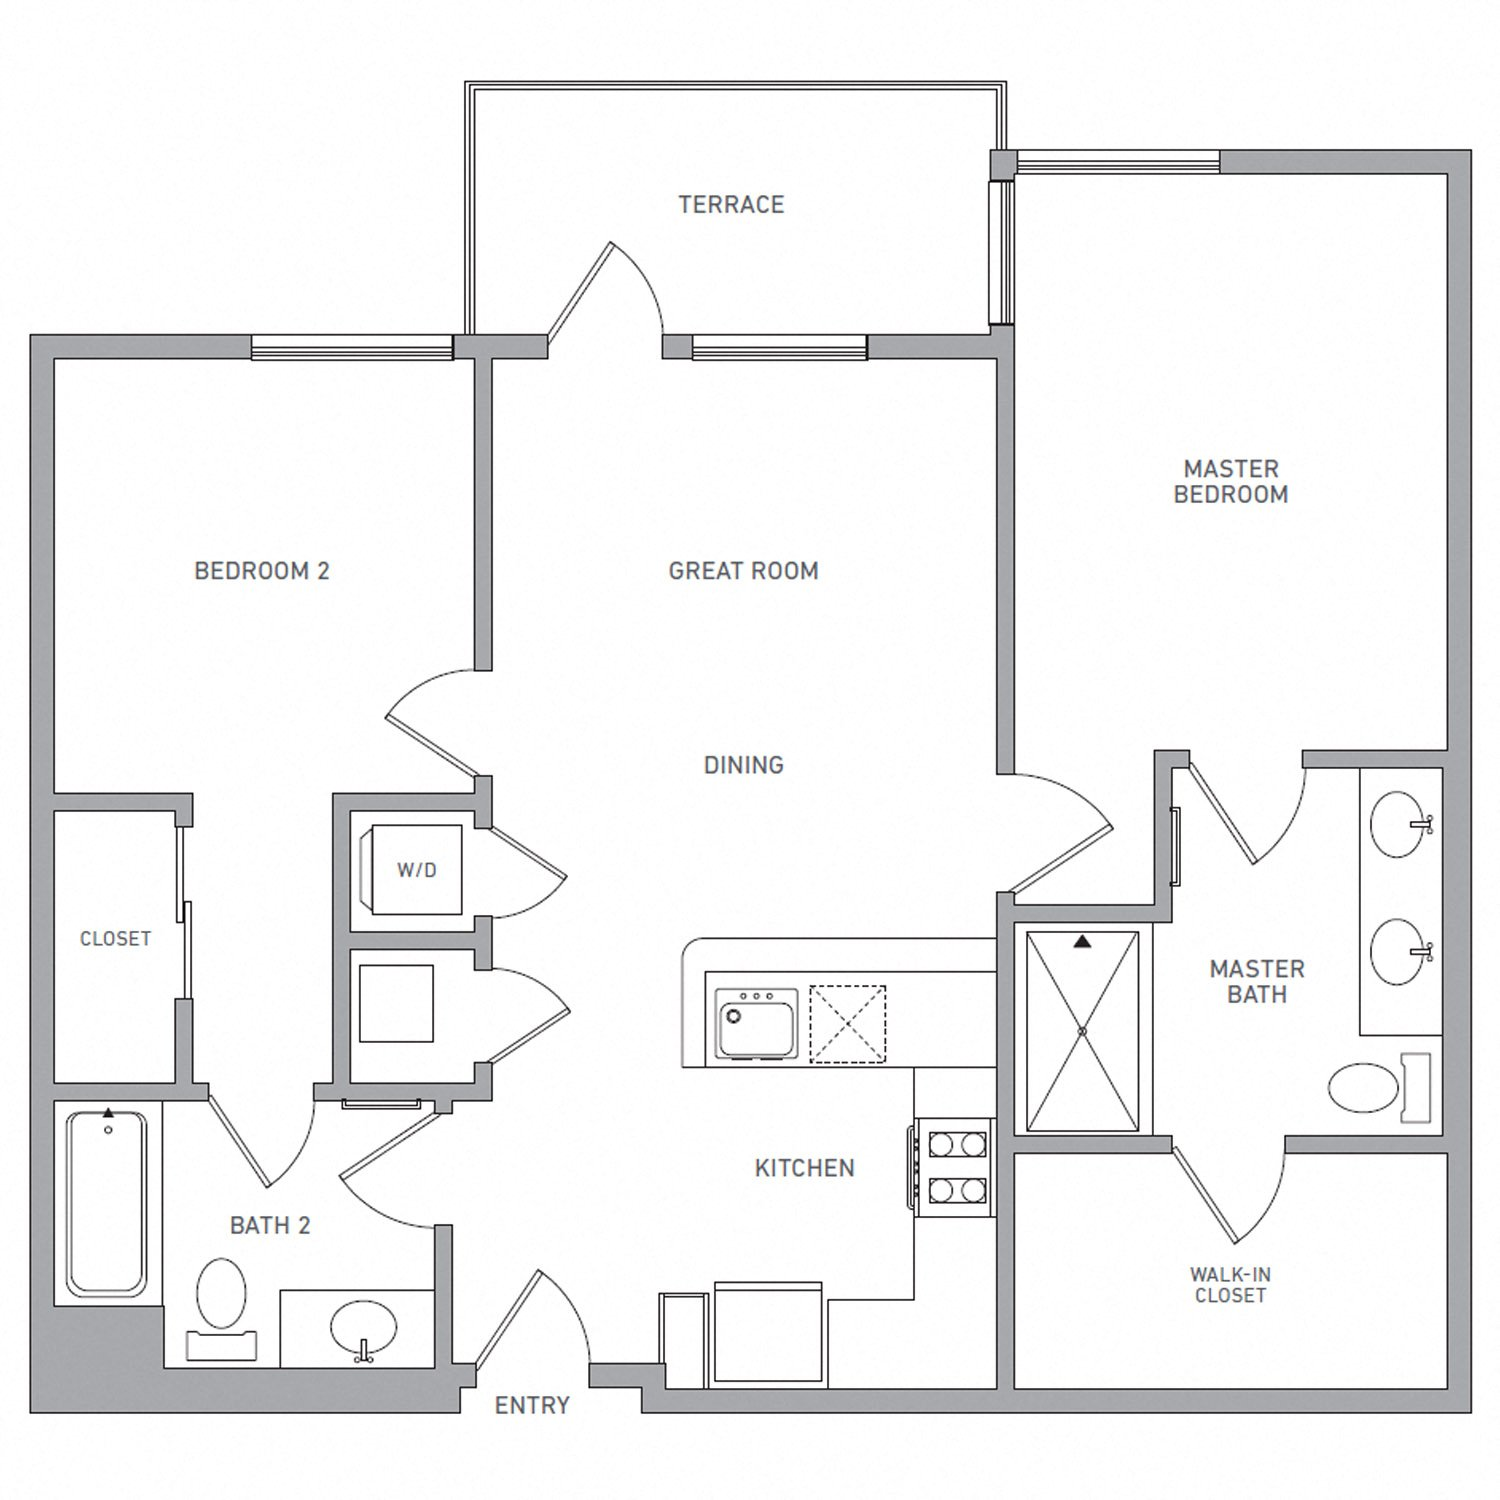 B Three floor plan diagram. Two bedrooms, two bathrooms, an open kitchen and living area, a terrace, and a washer dryer.